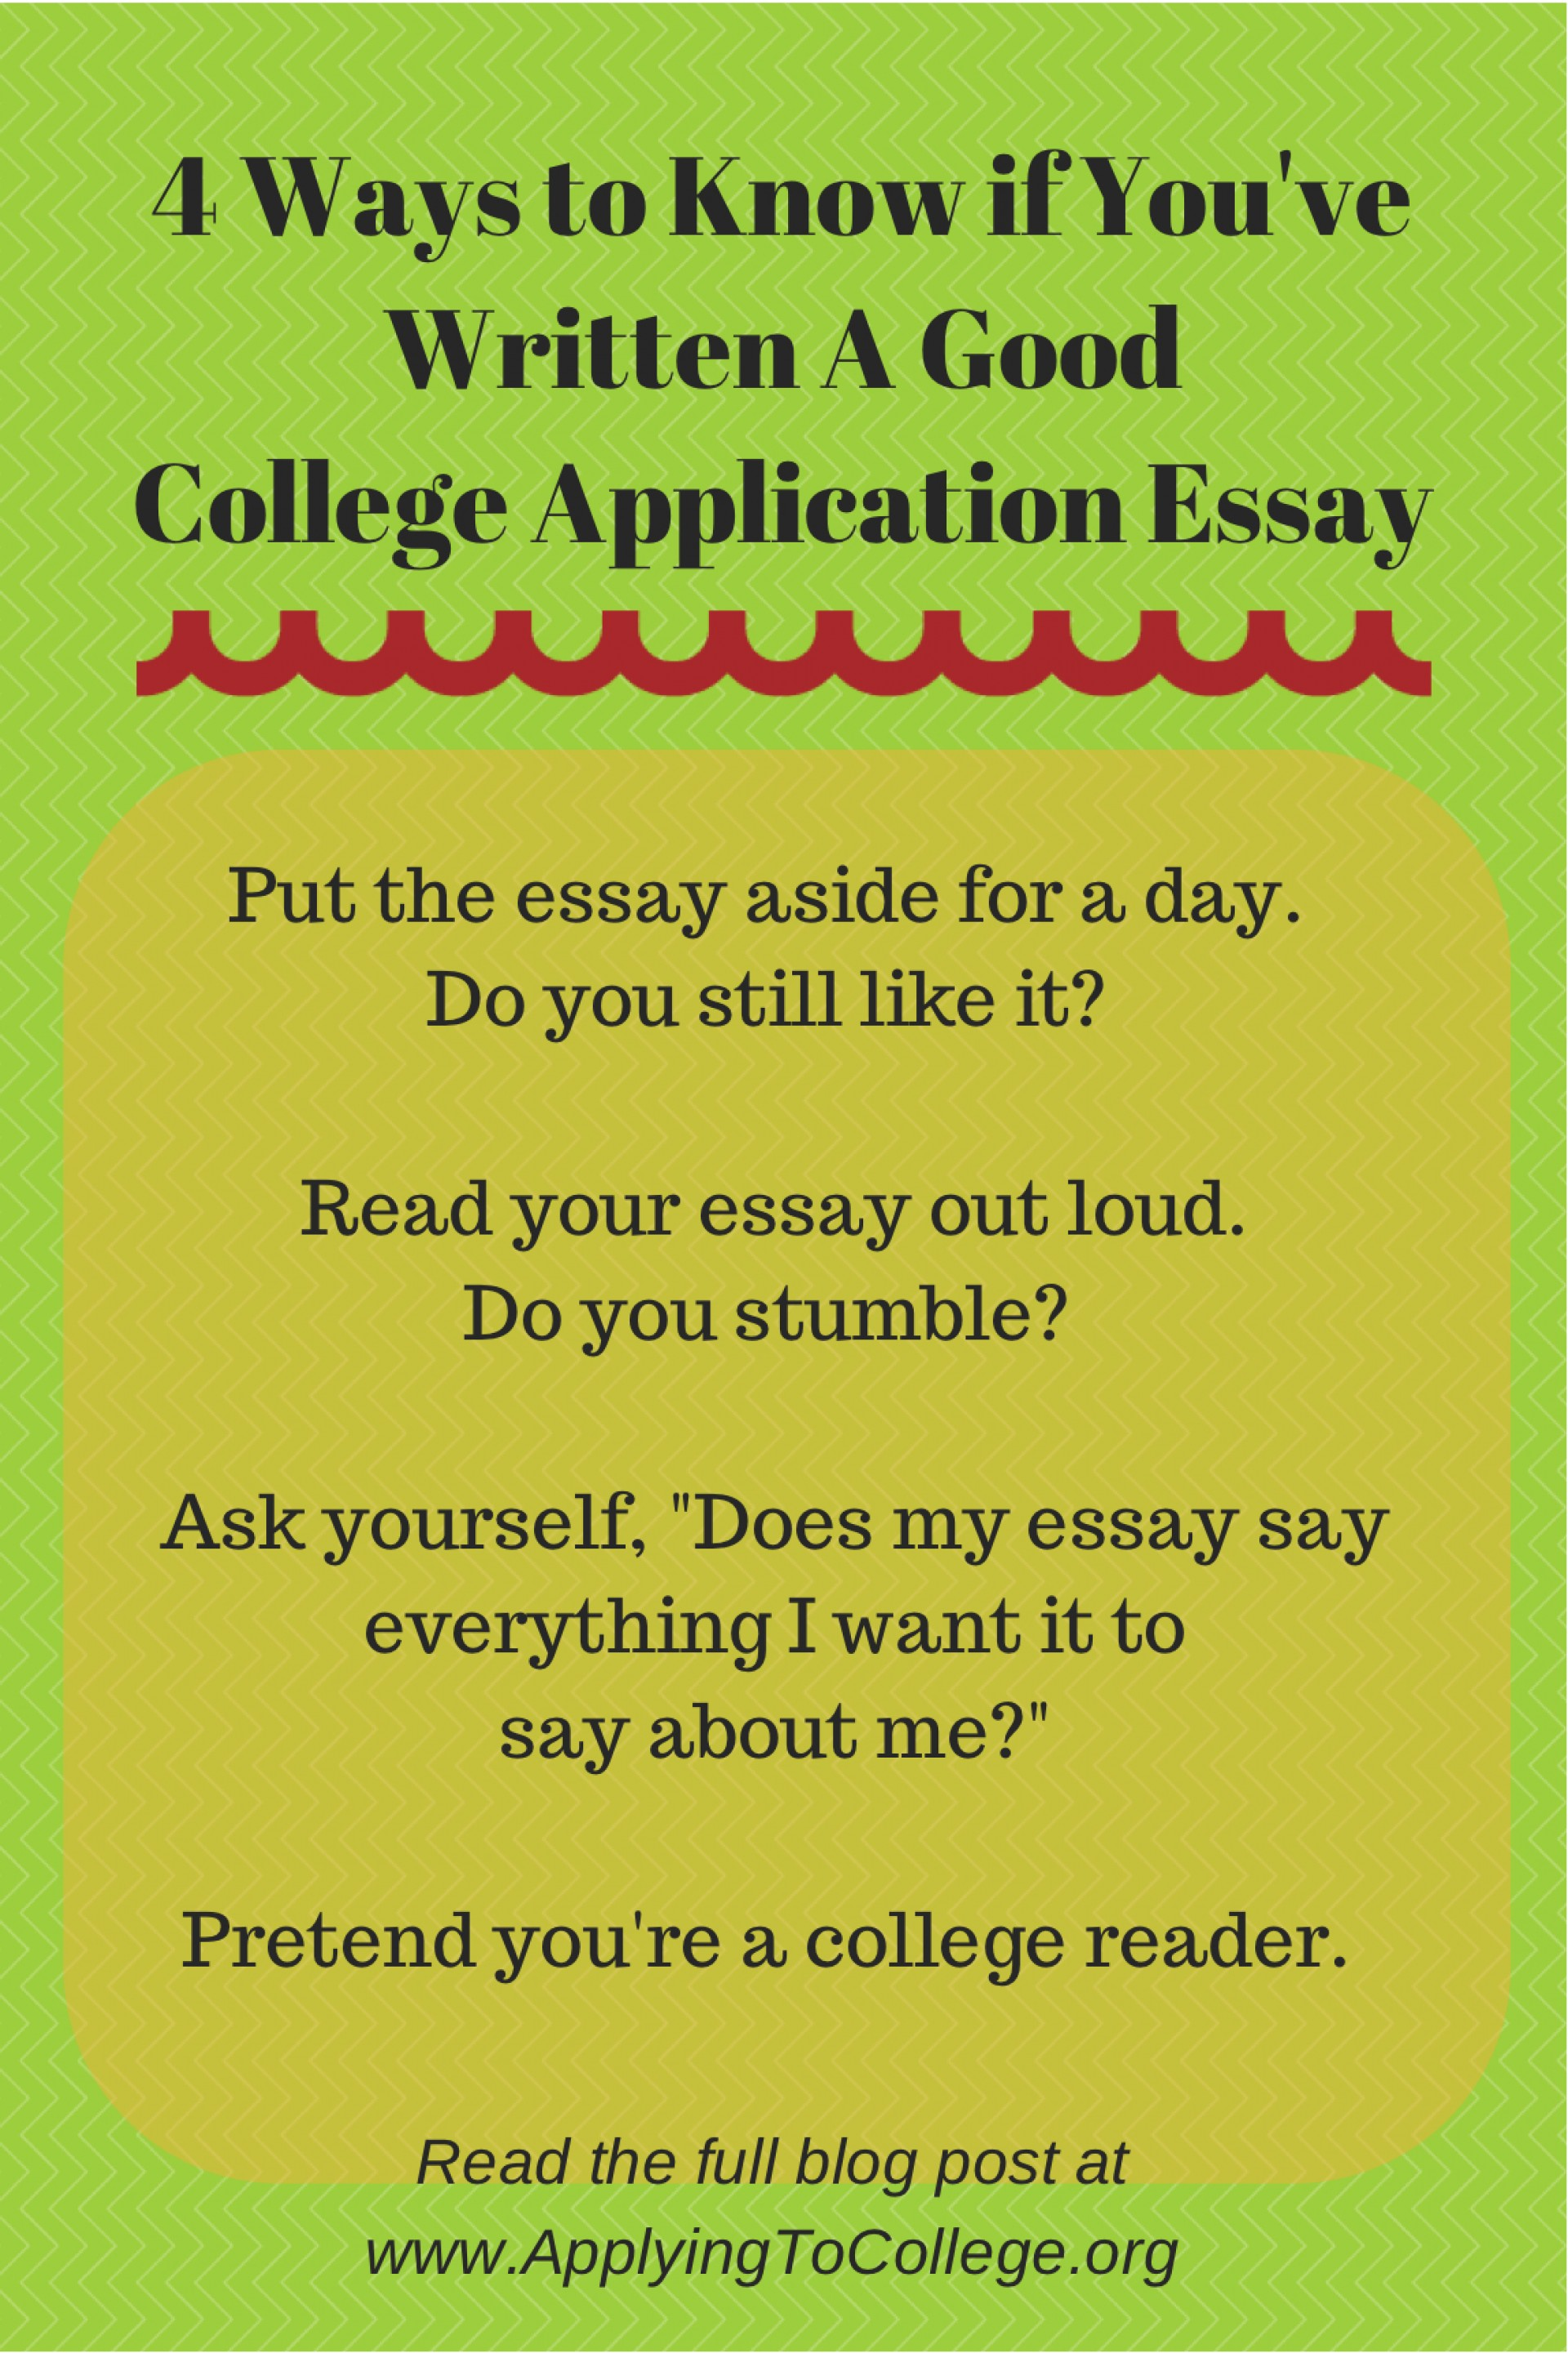 015 Essay Example Read My To Me 4ways Know If Youve Written Unique And Tell It's Good 1920